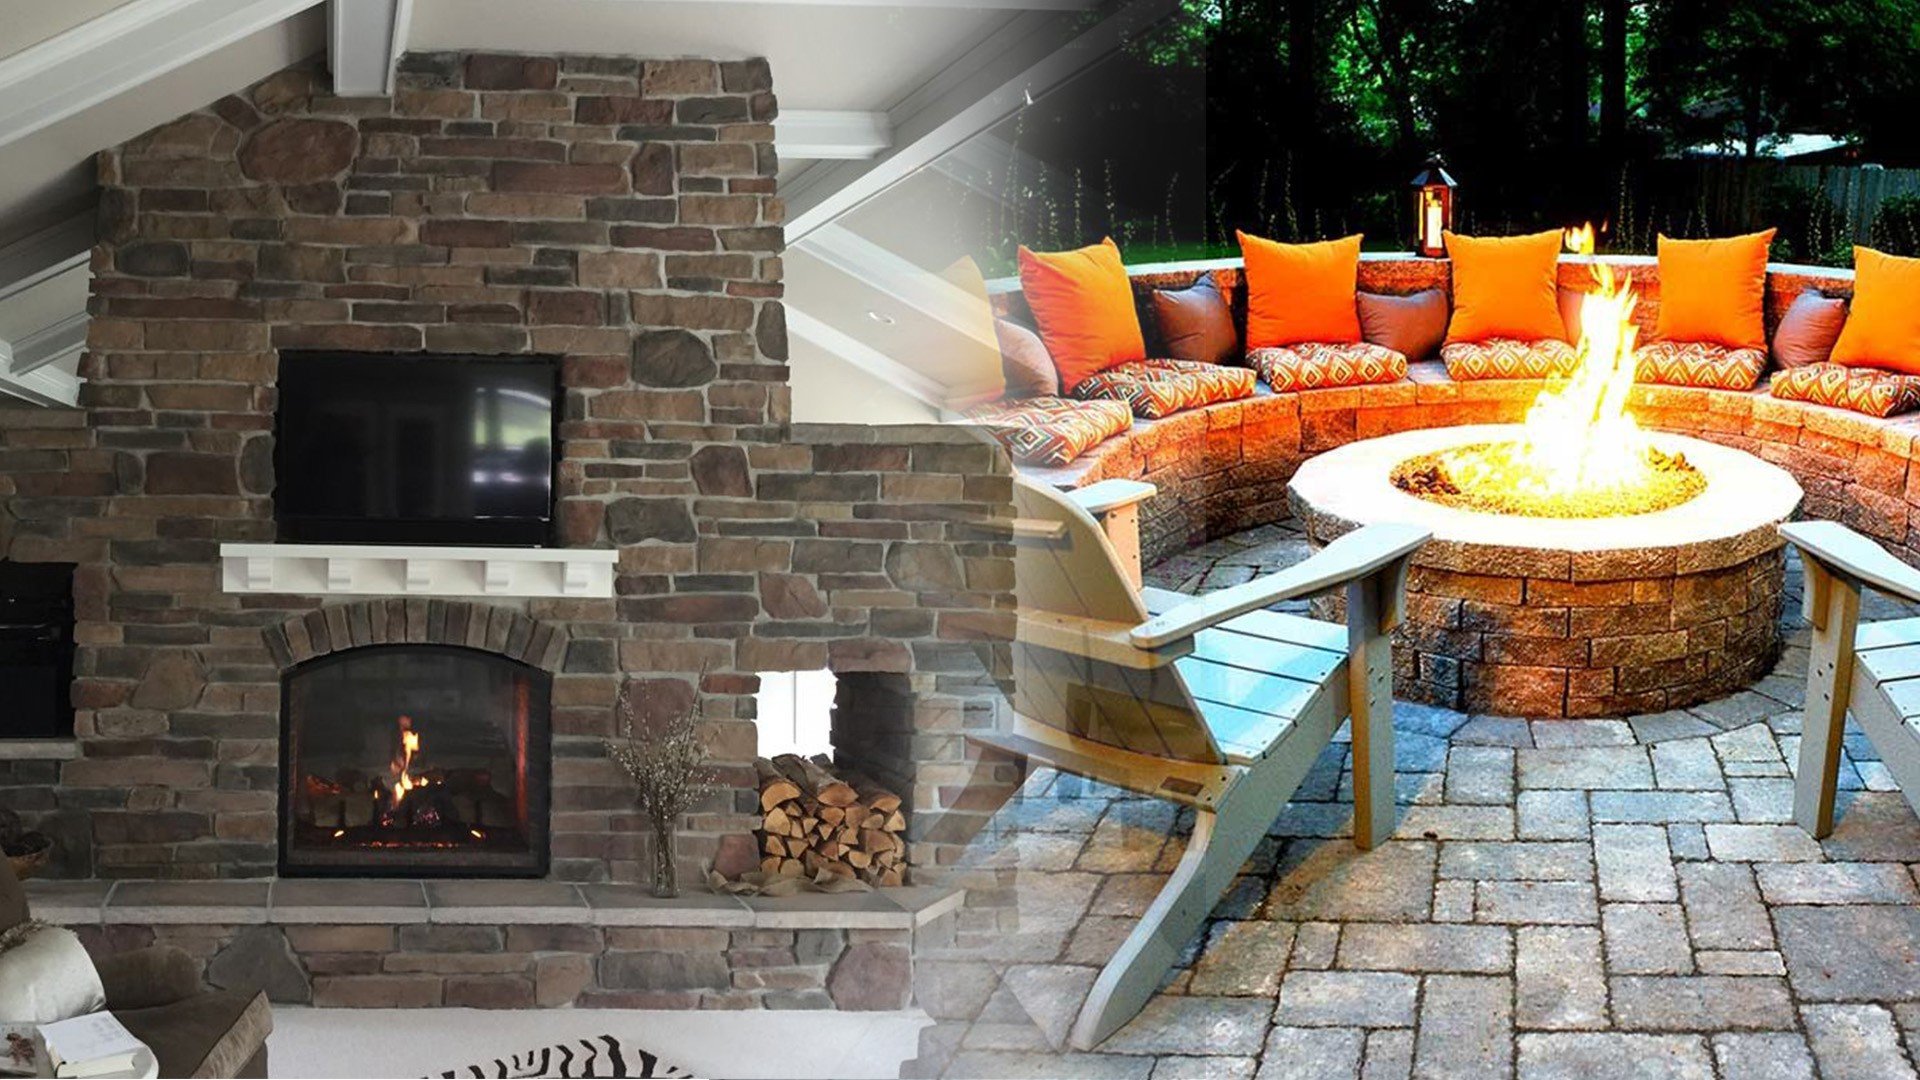 Outdoor Fireplaces & Fire Pits-Wichita Falls TX Professional Landscapers & Outdoor Living Designs-We offer Landscape Design, Outdoor Patios & Pergolas, Outdoor Living Spaces, Stonescapes, Residential & Commercial Landscaping, Irrigation Installation & Repairs, Drainage Systems, Landscape Lighting, Outdoor Living Spaces, Tree Service, Lawn Service, and more.